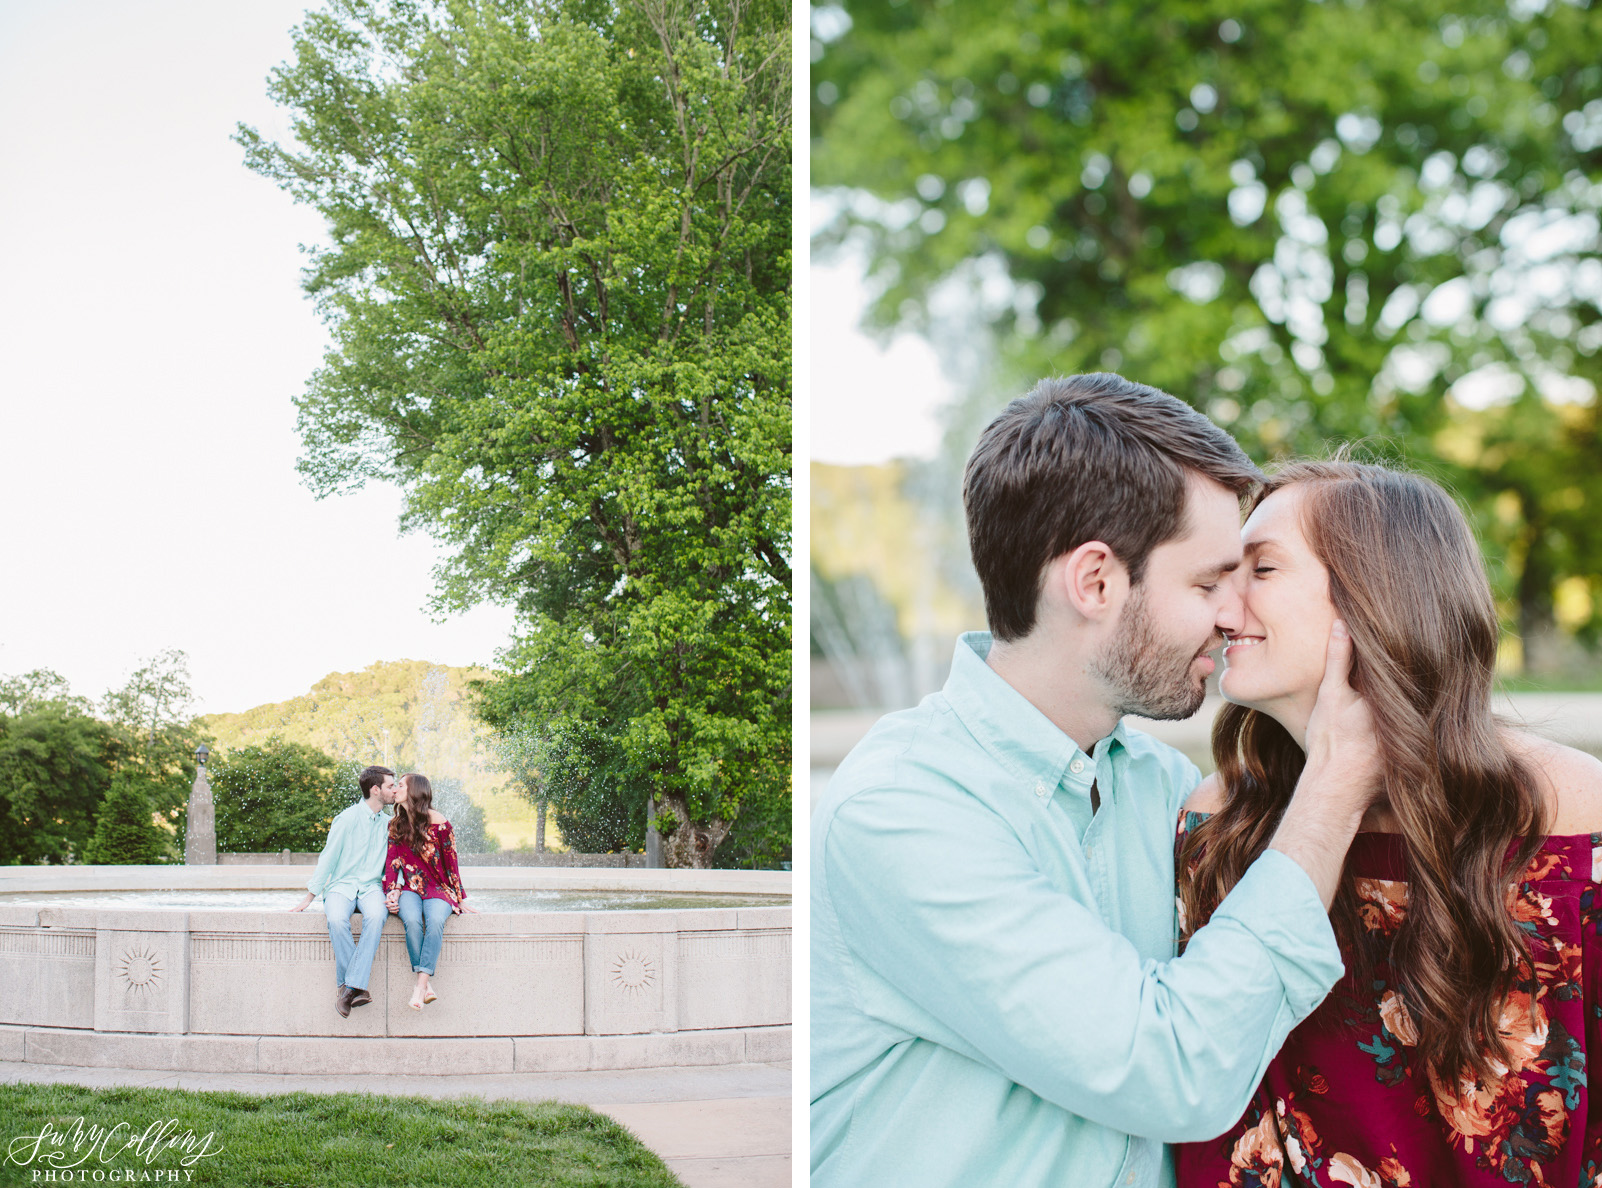 poses, couples, outdoor, Sequoyah hills, Knoxville, Tennessee, engagement, sunset, evening, love, vibrant, colorful, bright, creative, romantic, natural, light and airy, natural light, passion, inspiration, intimate, outfits, fountain, kiss